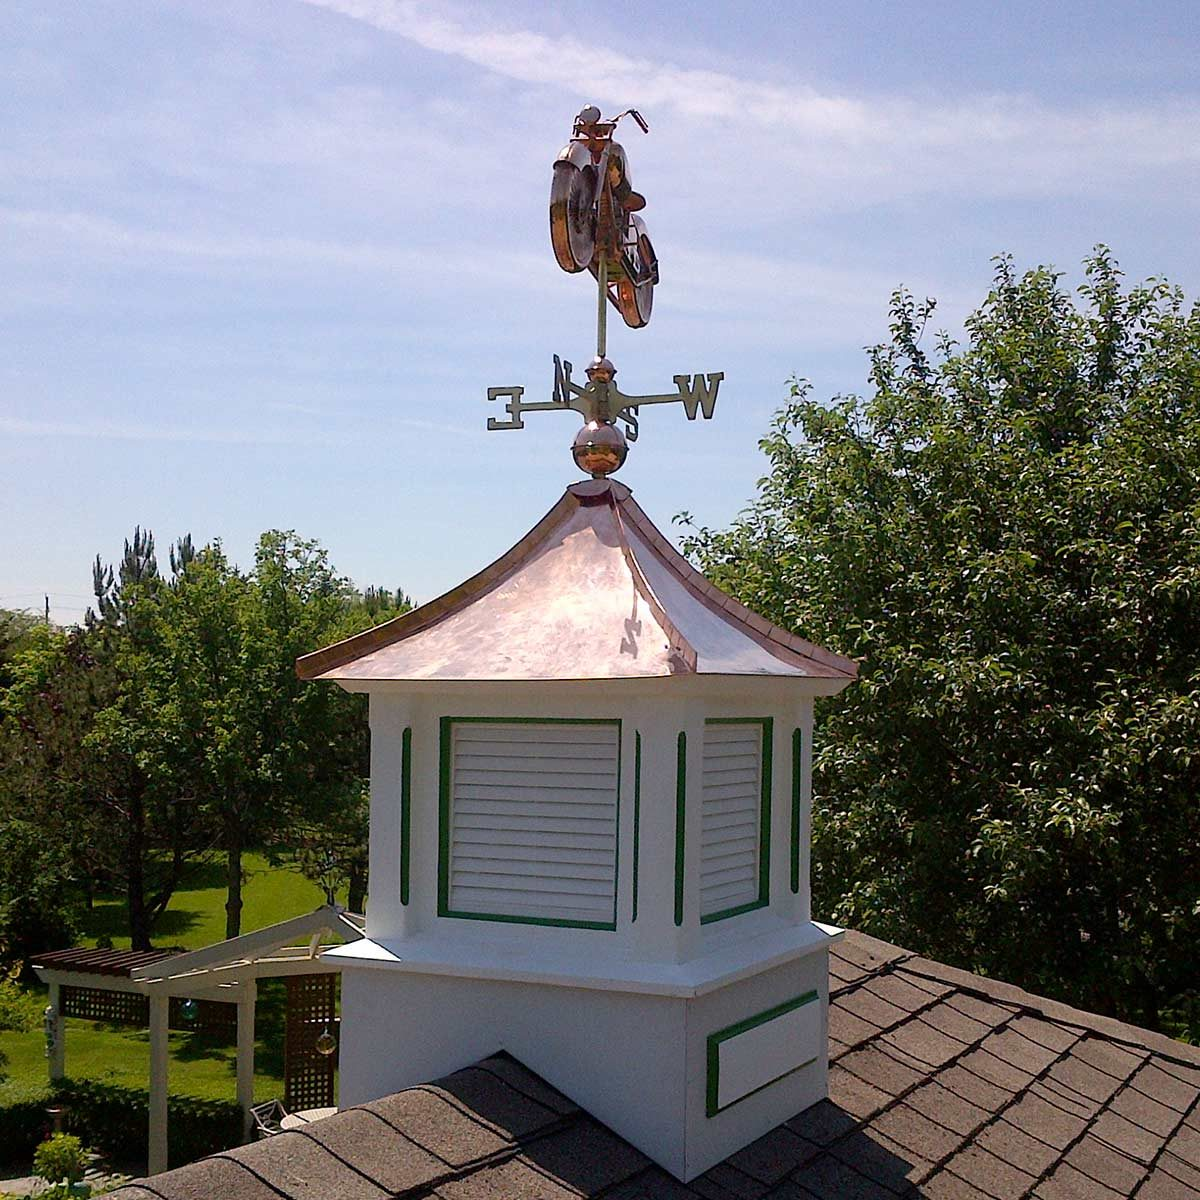 reader cupola with motorcycle